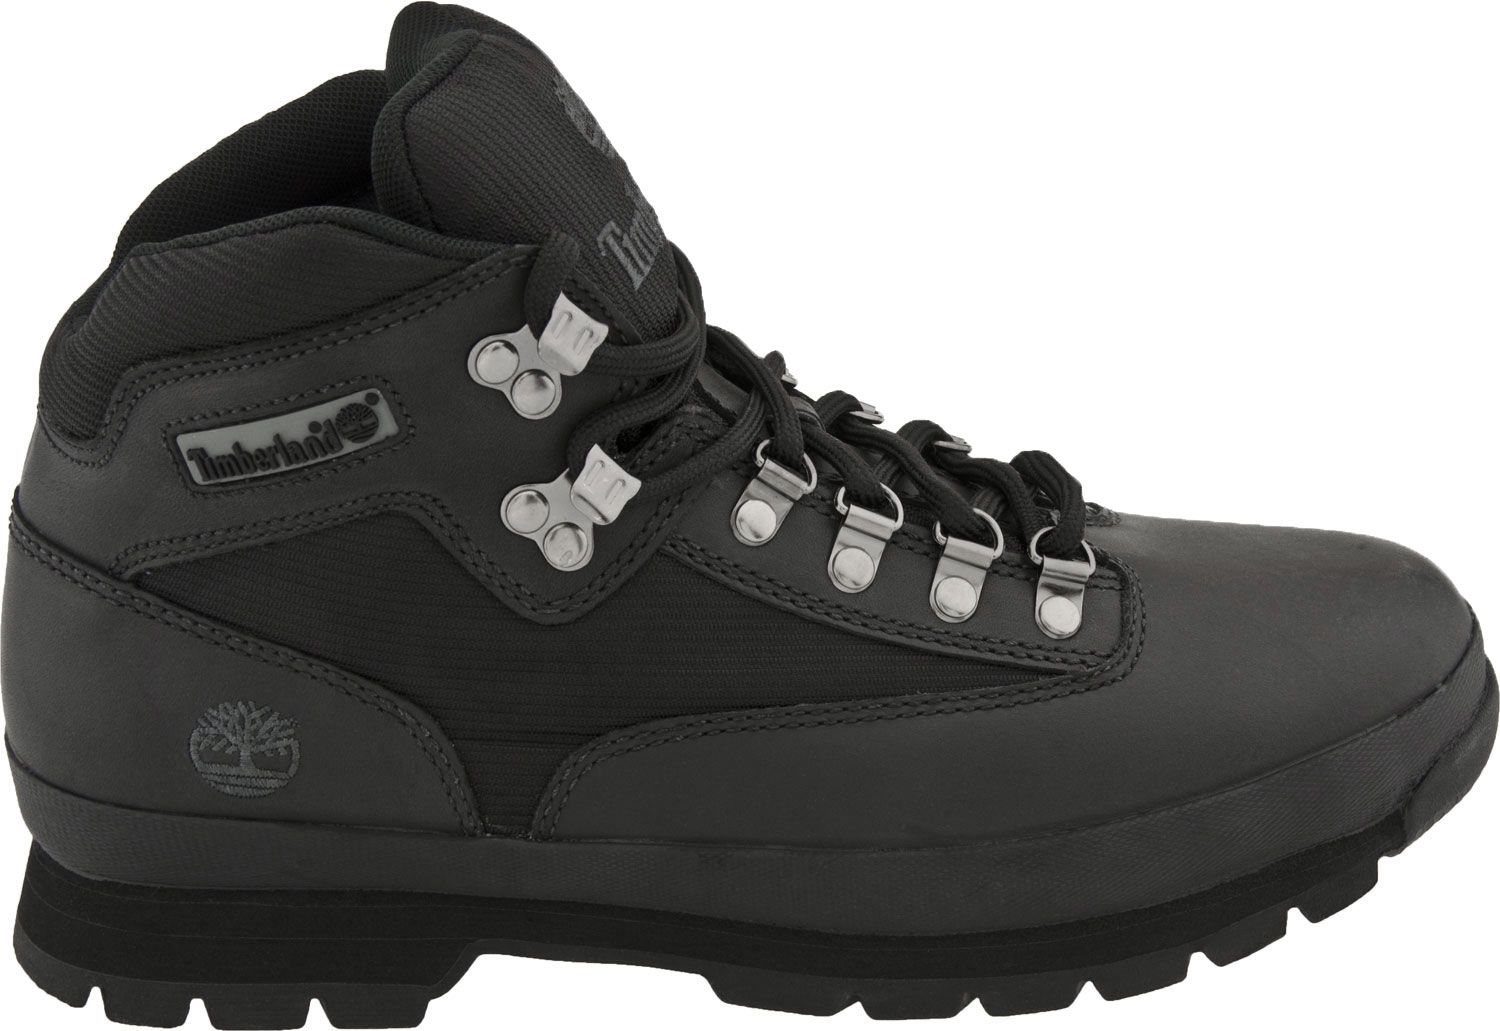 688aa2d2559 black lace timberland euro hiker 2.0 boots